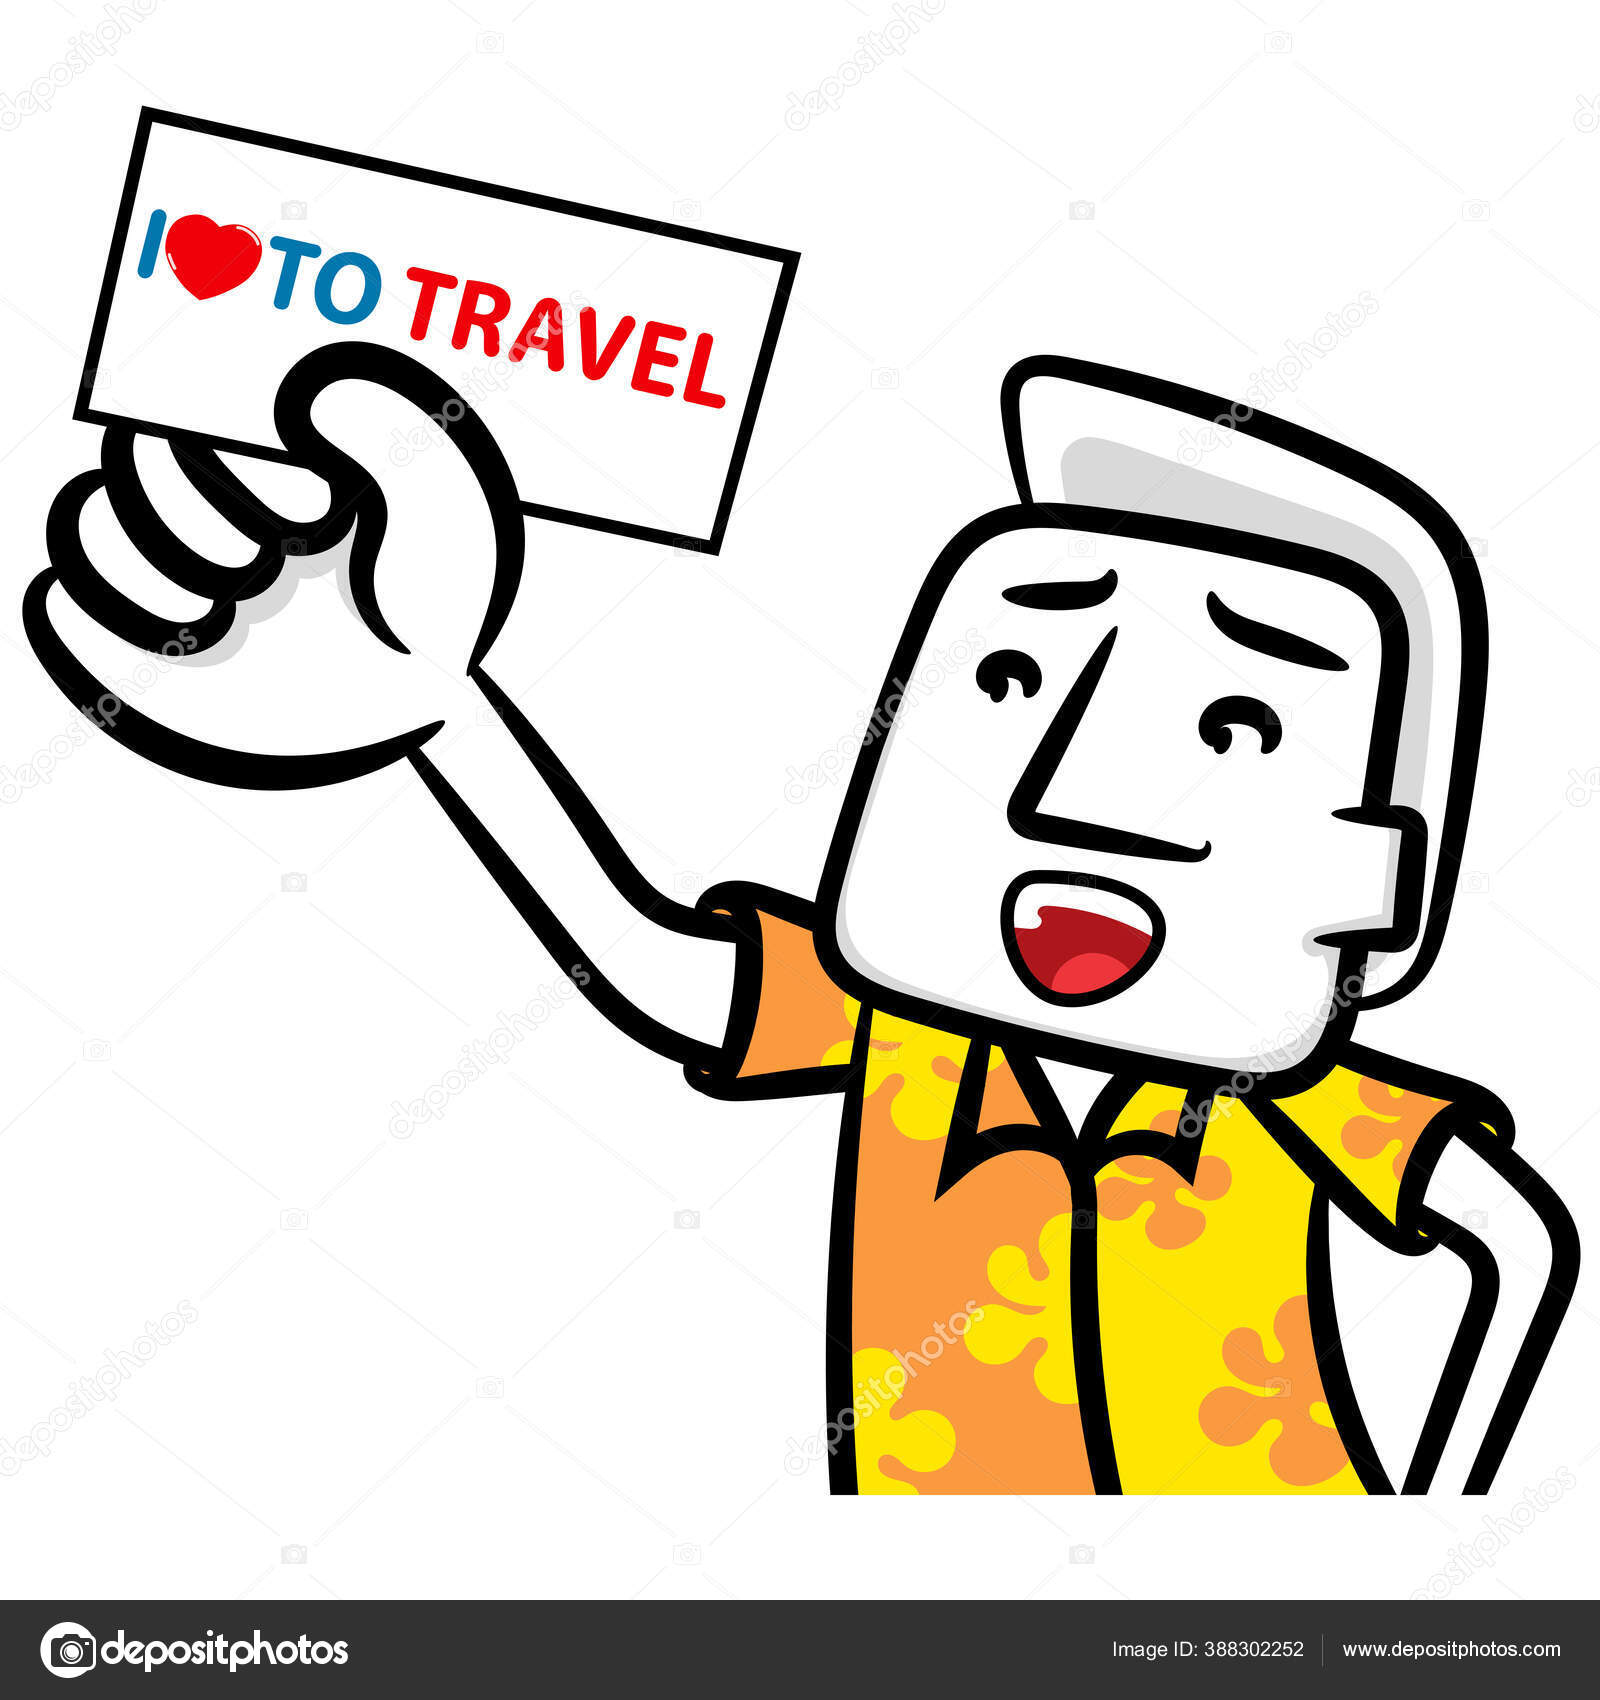 depositphotos 388302252 stock illustration white man cartoon love travel